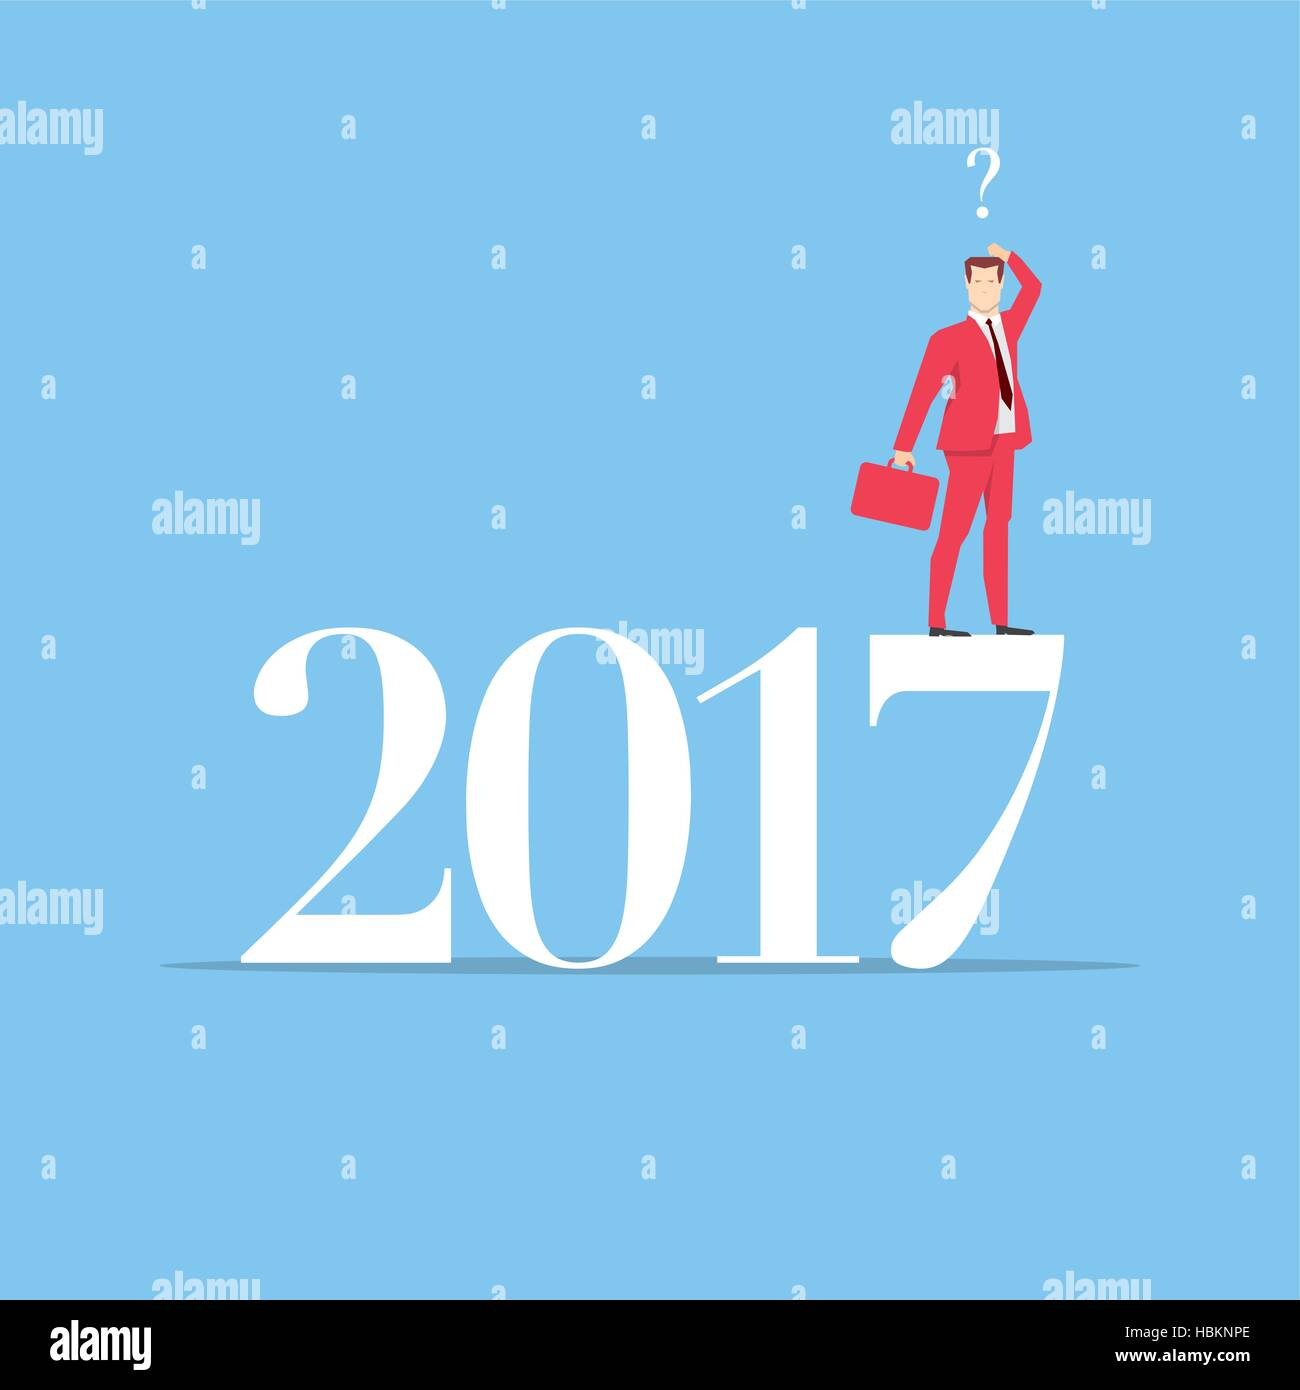 Businessman in red suit. Flat style business new year 2017 concept vector illustration. - Stock Vector